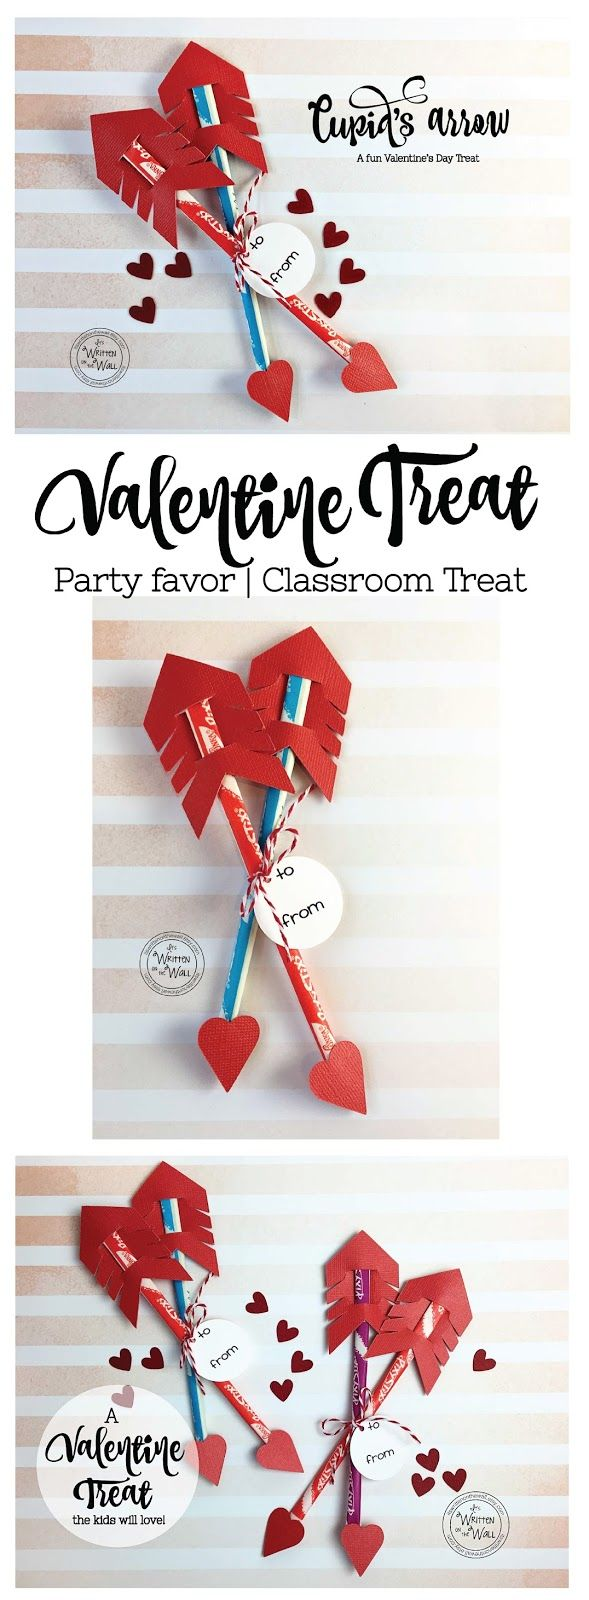 It's Written on the Wall: Valentine's Day Treat-Cupid's Arrow with Pixy Stix Candy-So much fun for Classroom Treats or Party Favors